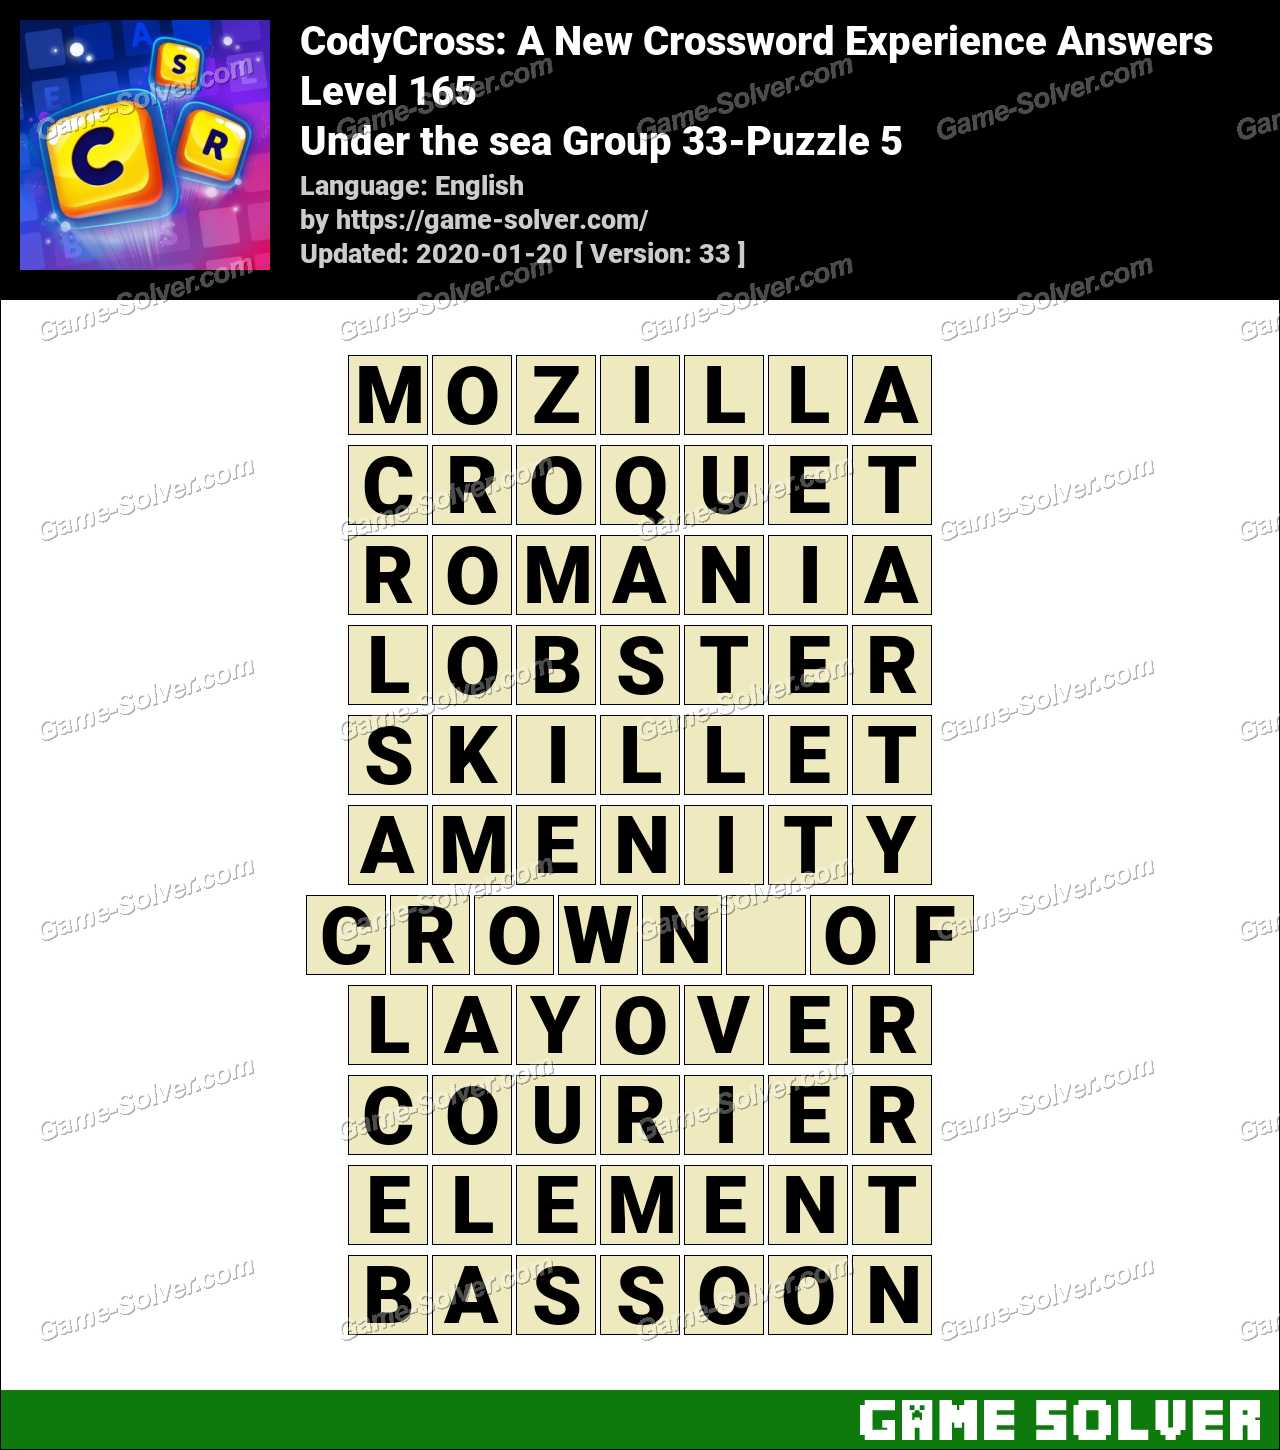 CodyCross Under the sea Group 33-Puzzle 5 Answers